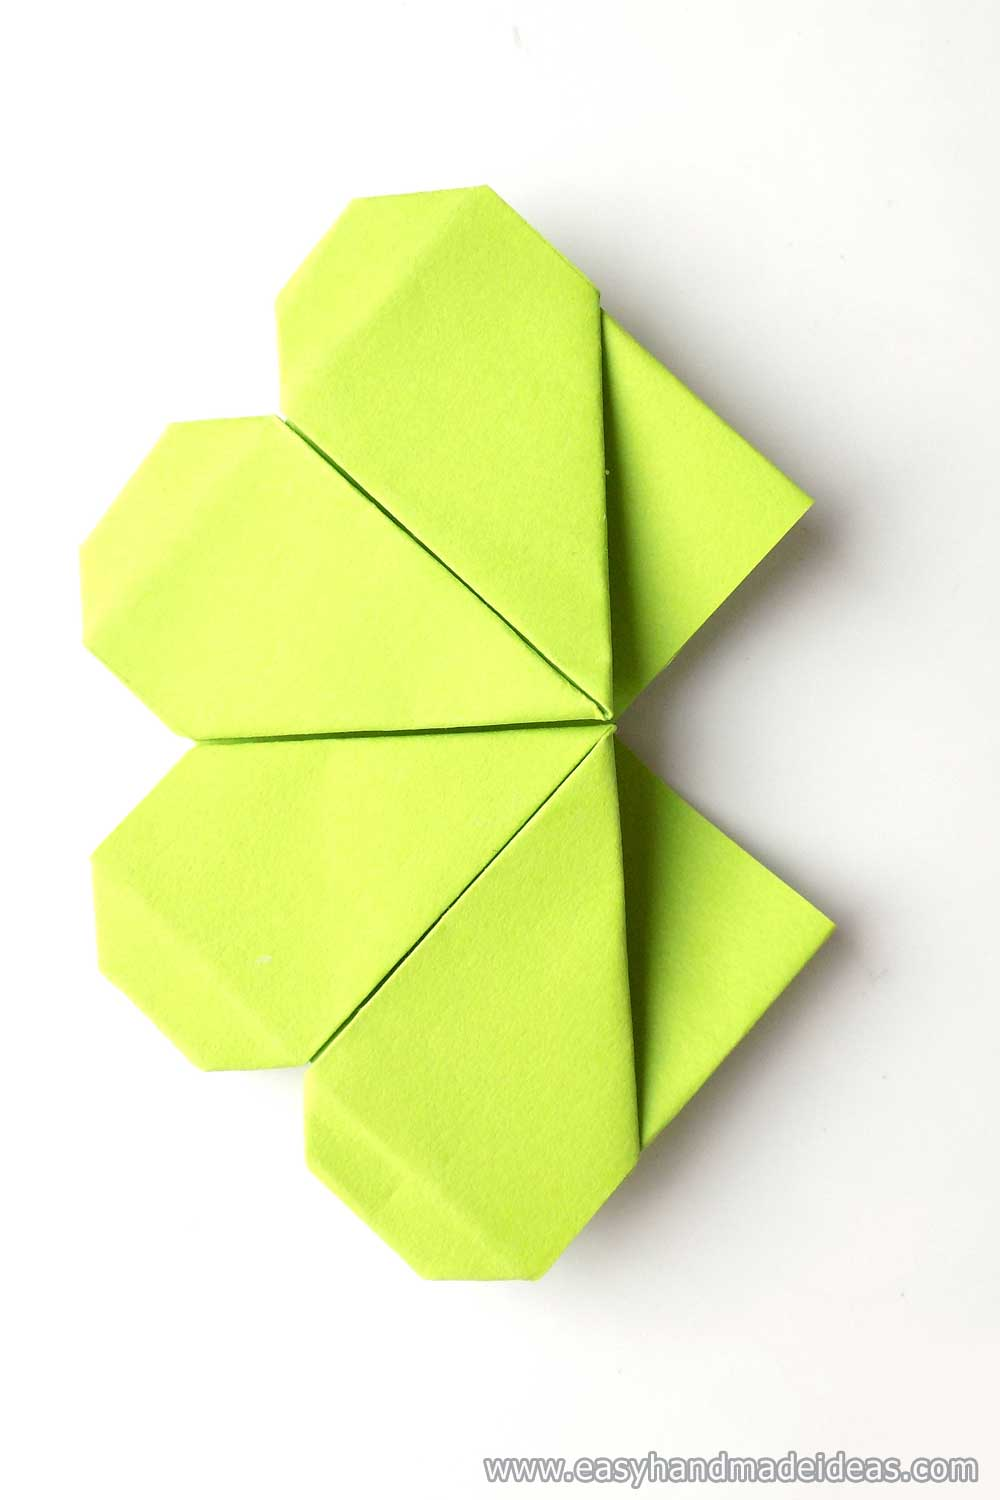 The Origami Forum • View topic - Mini Origami 4 Leaf Clover Help! | 1500x1000